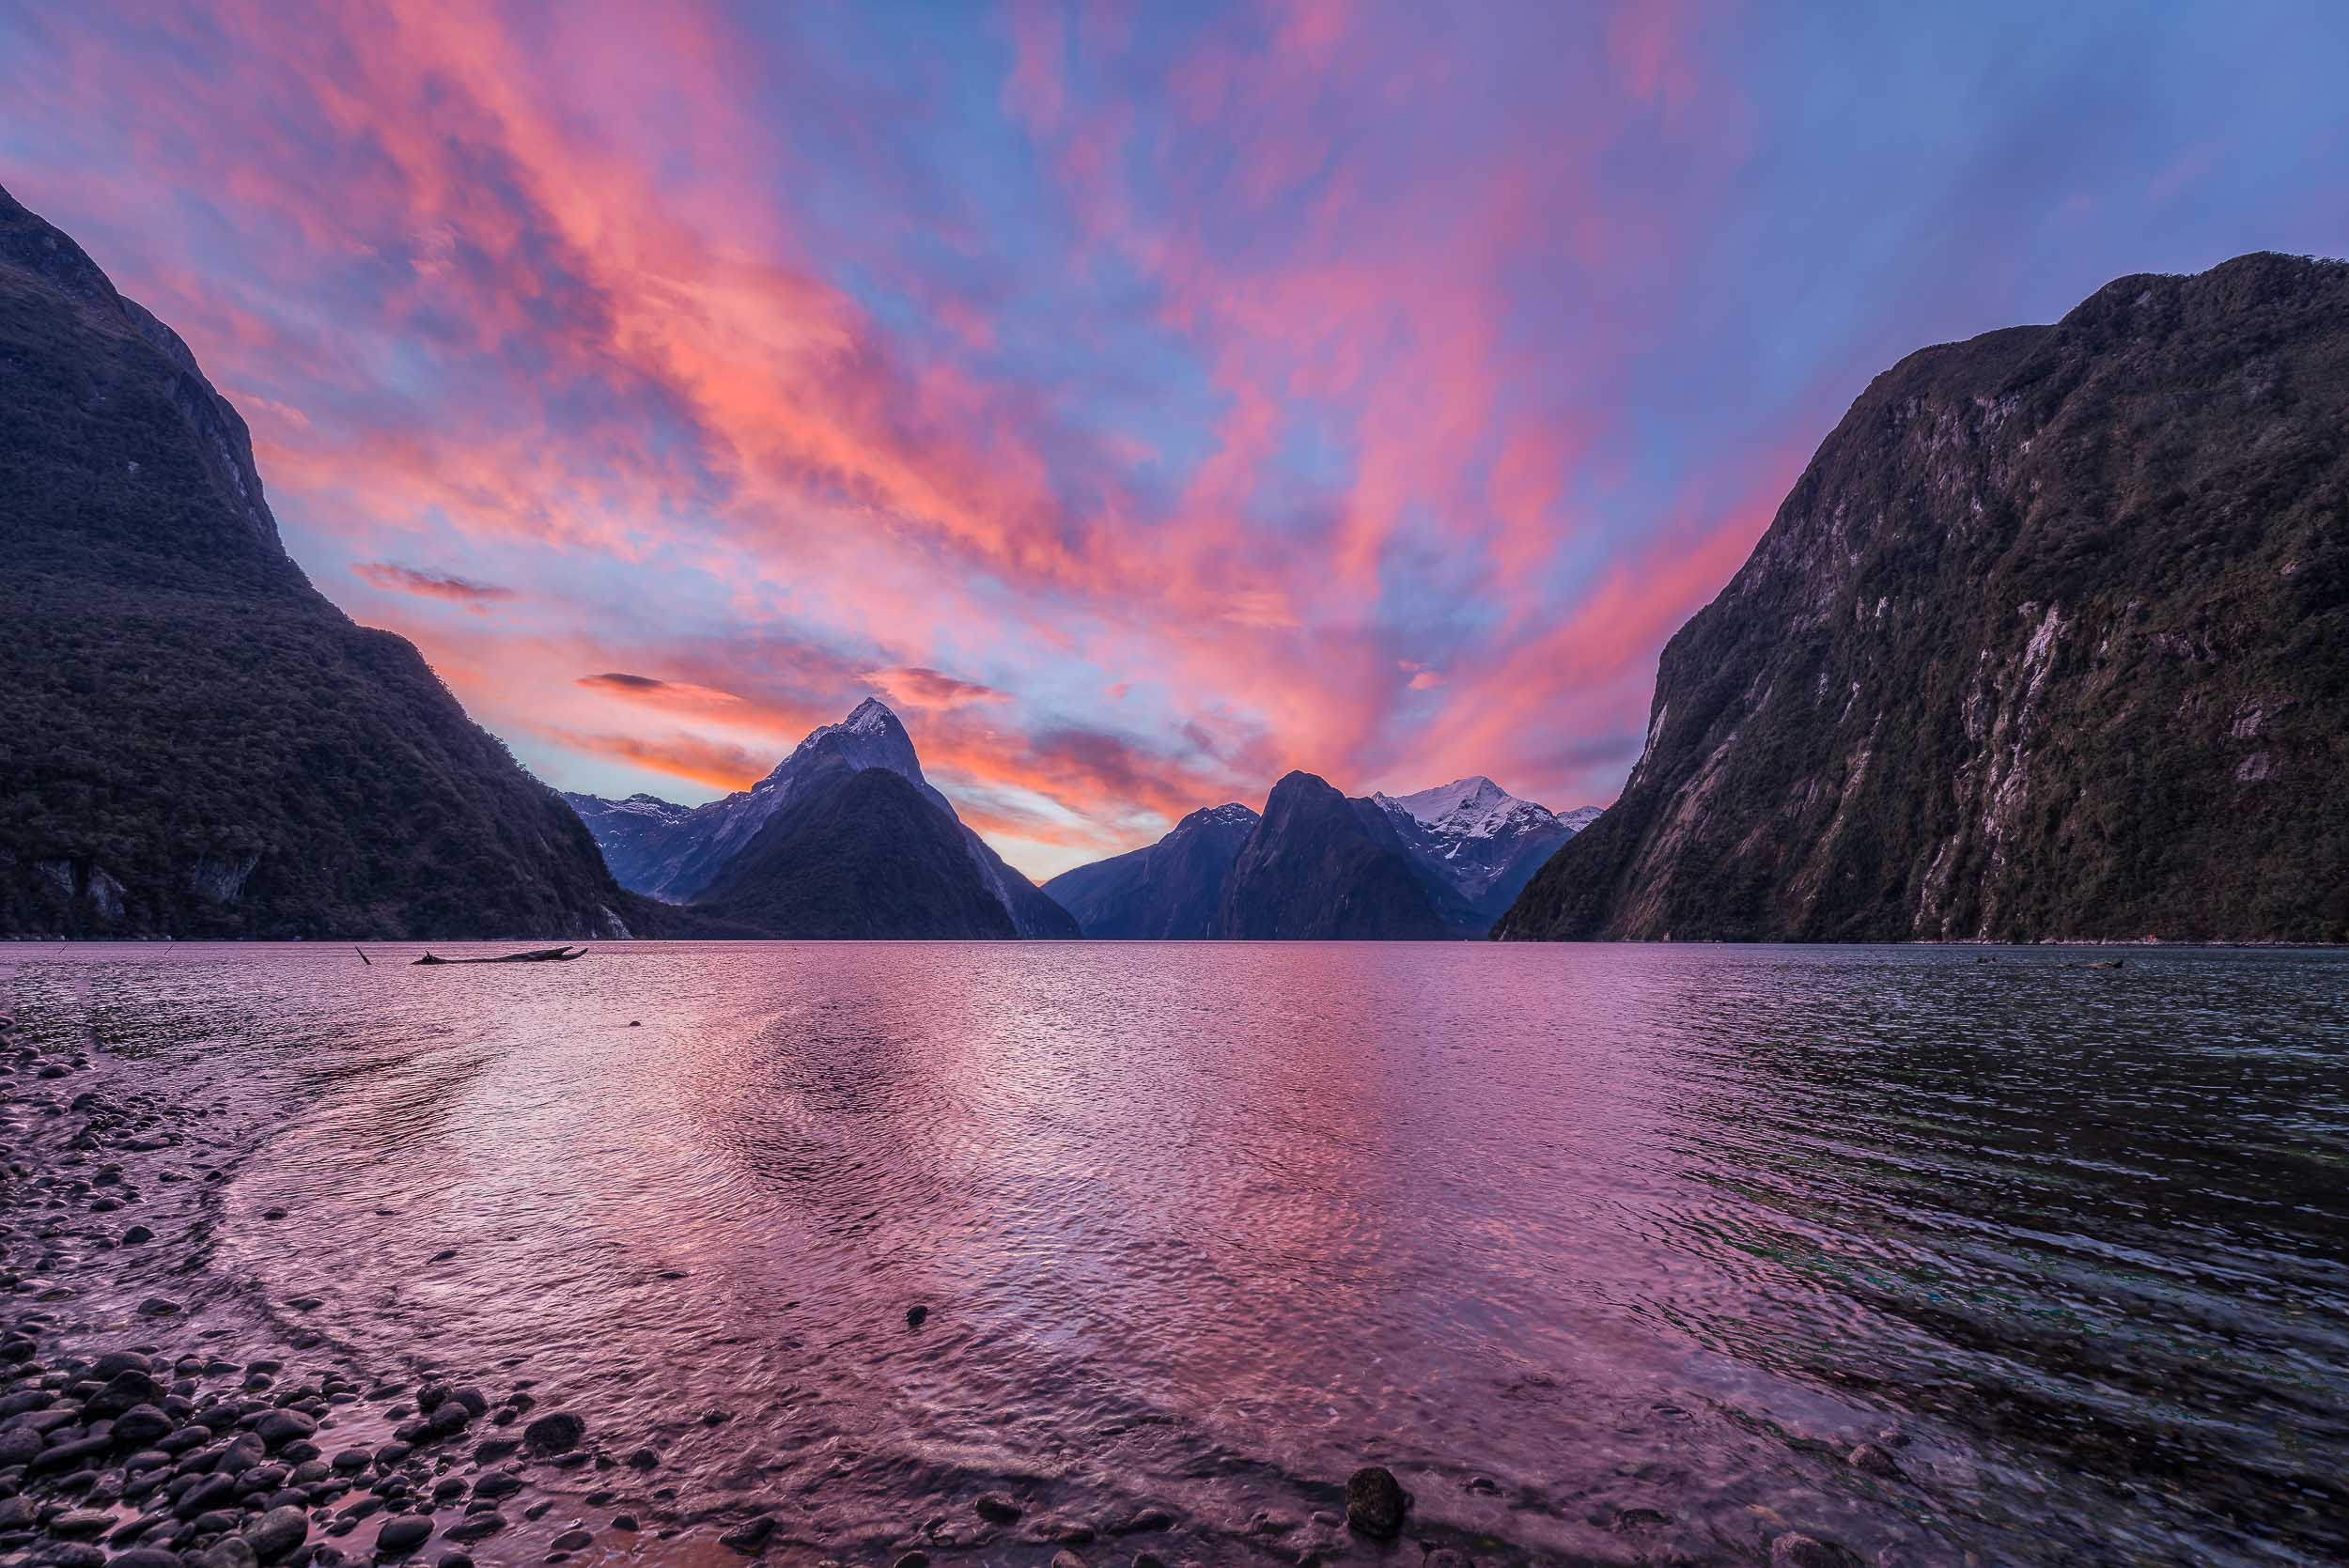 A    spectacular afterglow    illuminates the sky above    Mitre Peak    and surrounding mountains on    Milford Sound   , Fiordland,    New Zealand   .